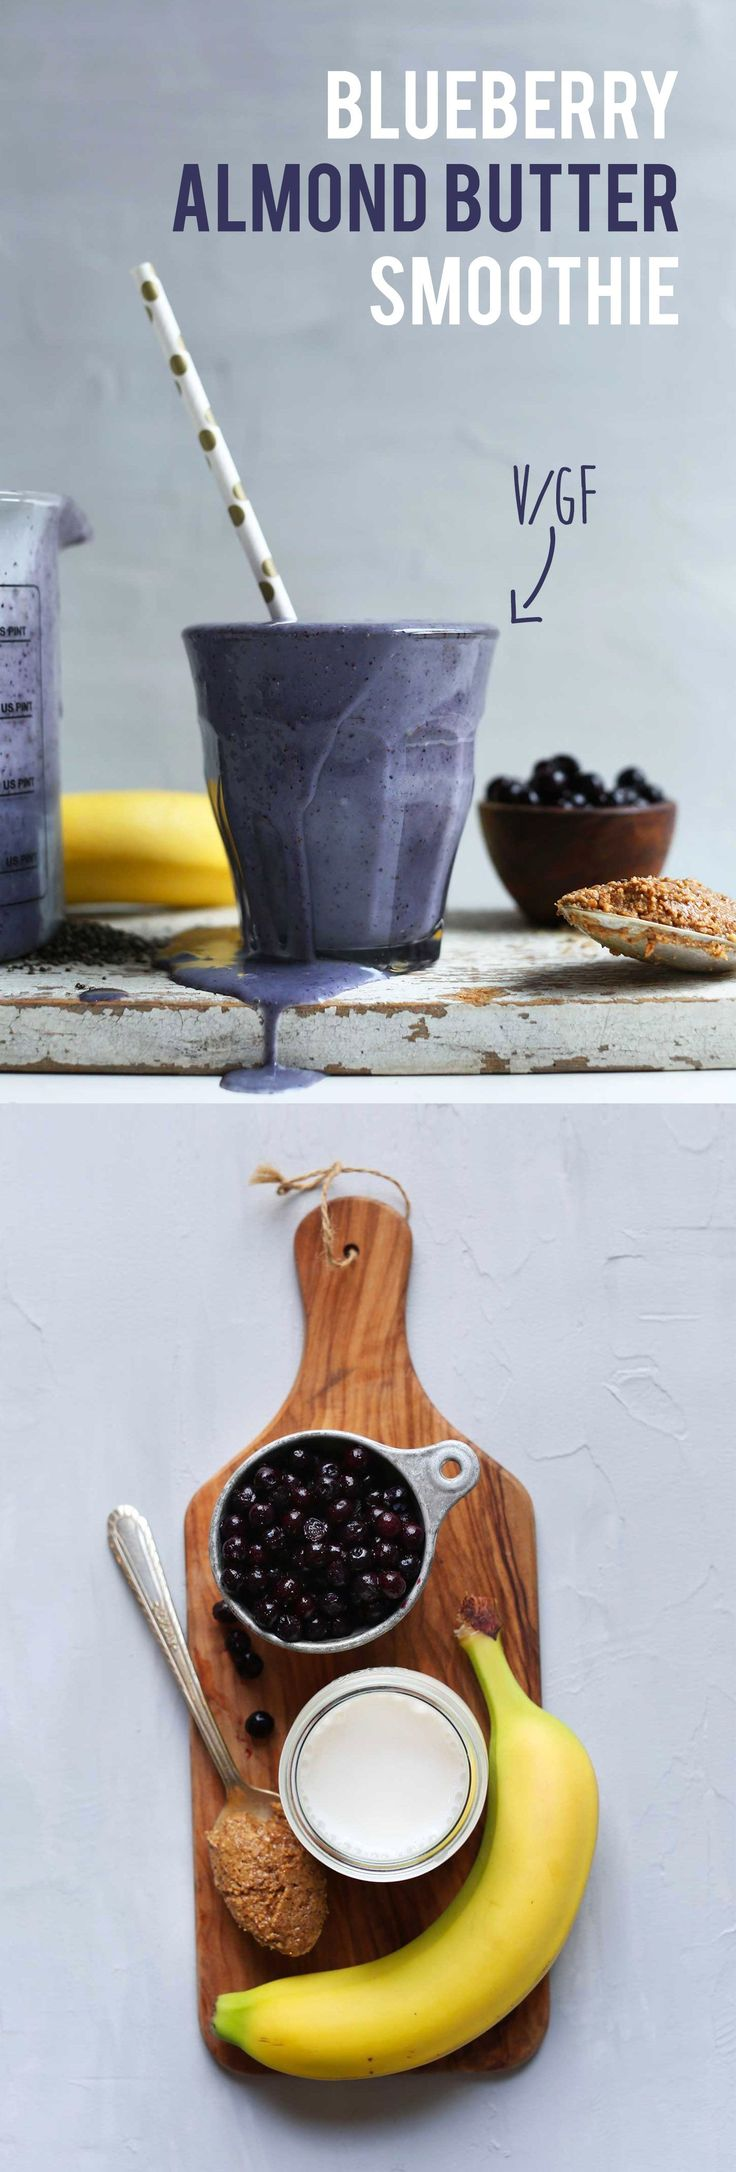 Insanely creamy and nutritional blueberry almond butter smoothie with almond milk, flax, and chia seed. The perfect healthy breakfast or afternoon snack.